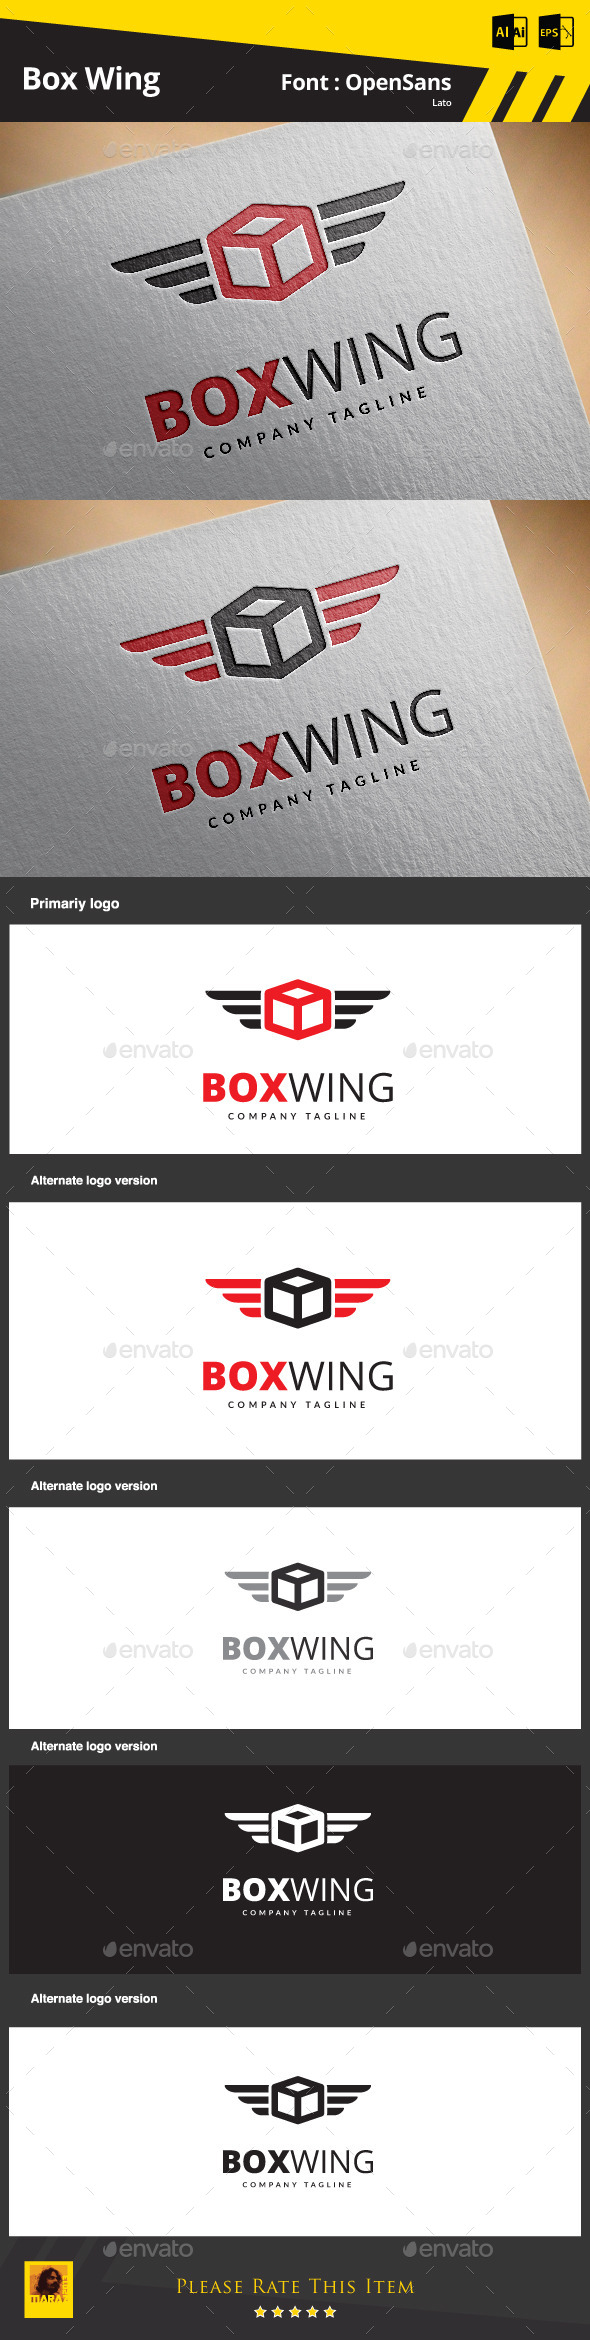 GraphicRiver Box Wing 9146228